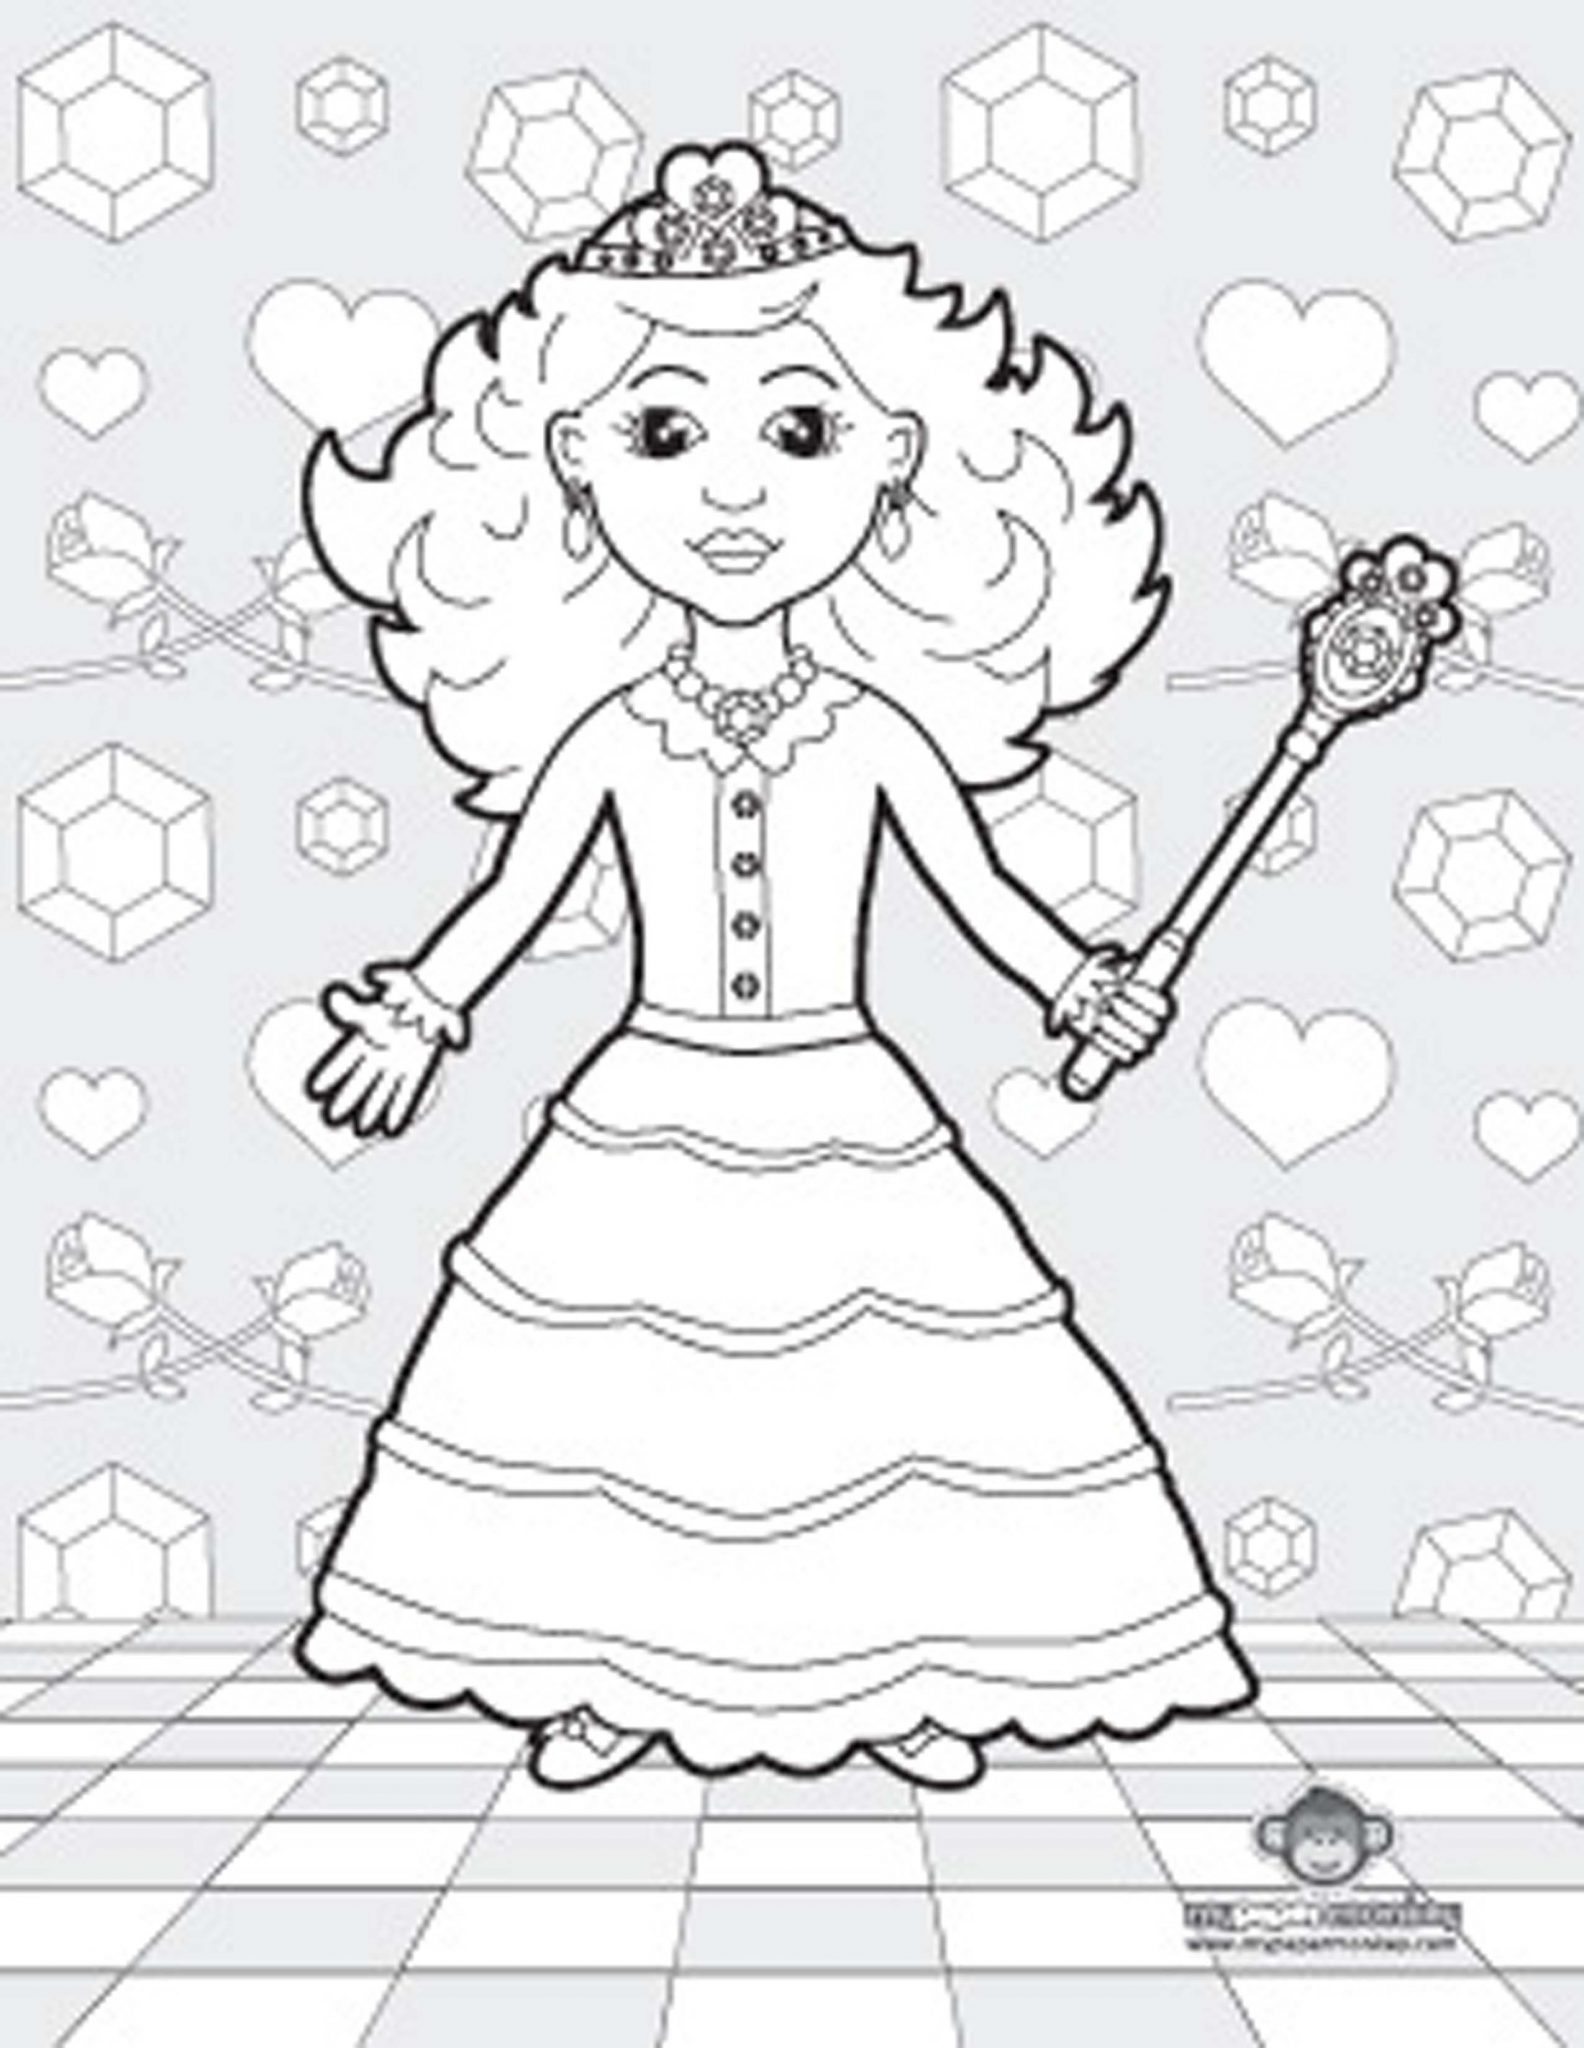 princess-tiana-coloring-pages | | BestAppsForKids.com